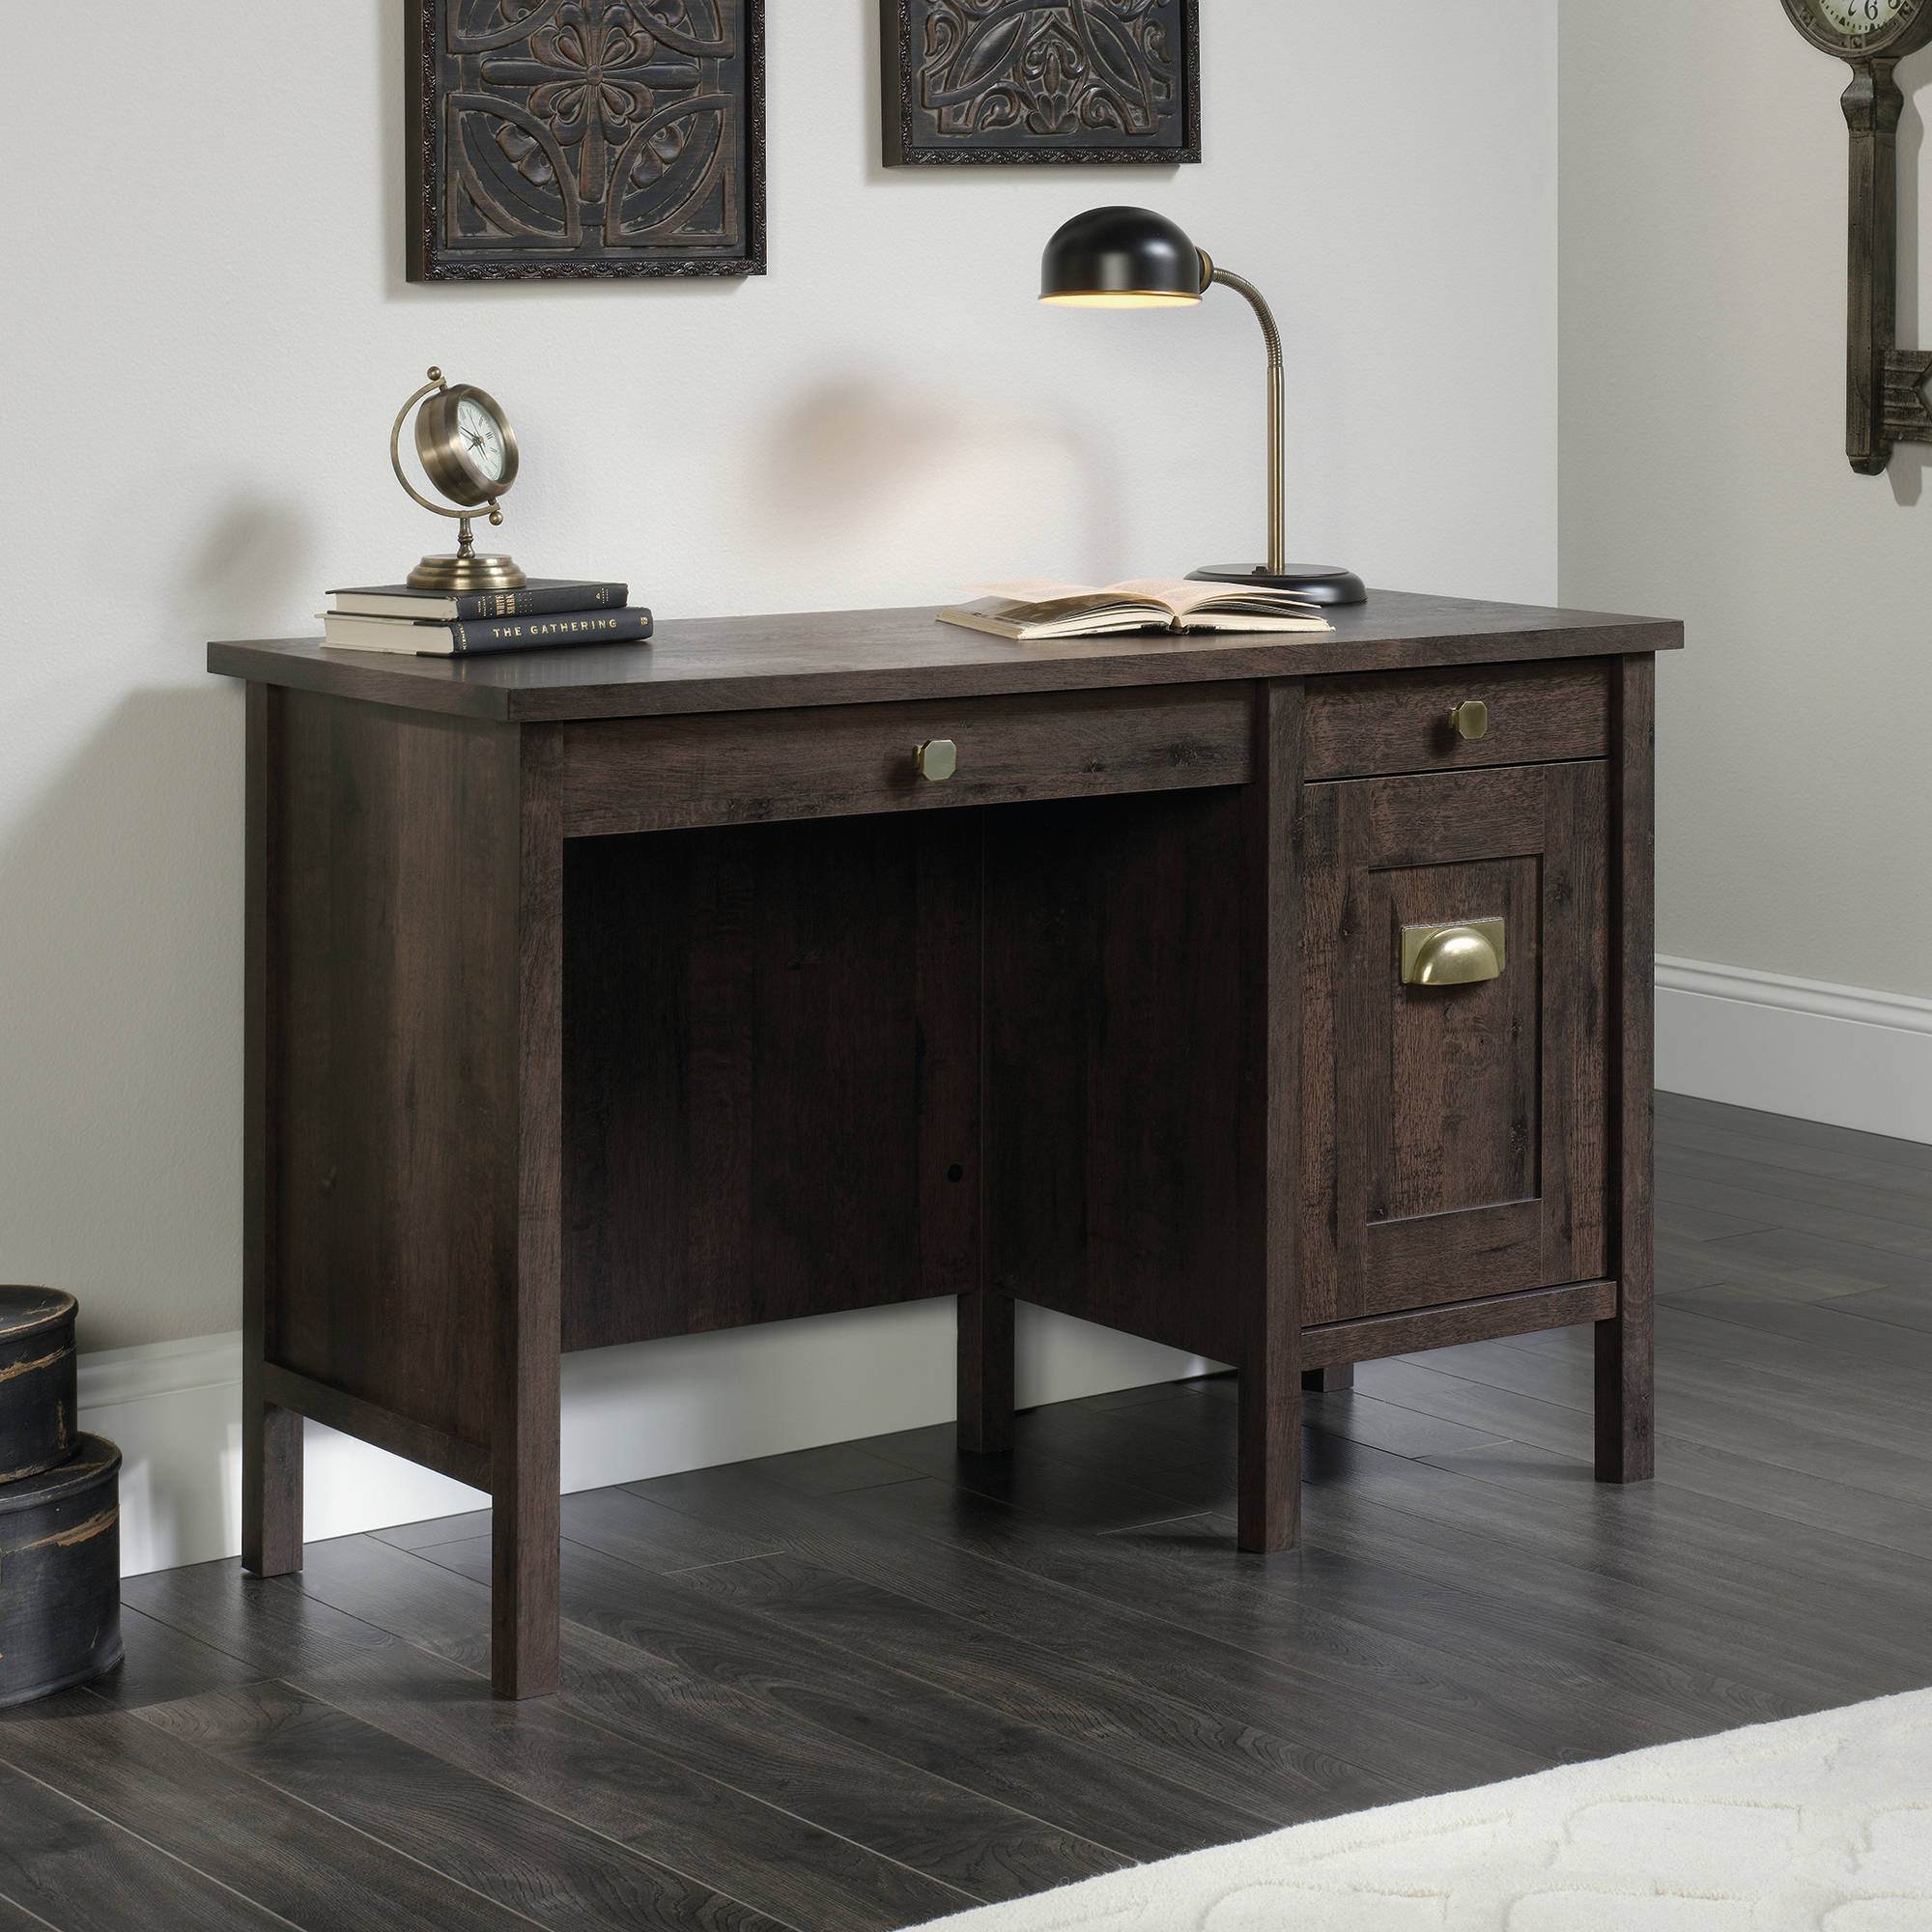 Sauder New Grange Desk, Coffee Oak